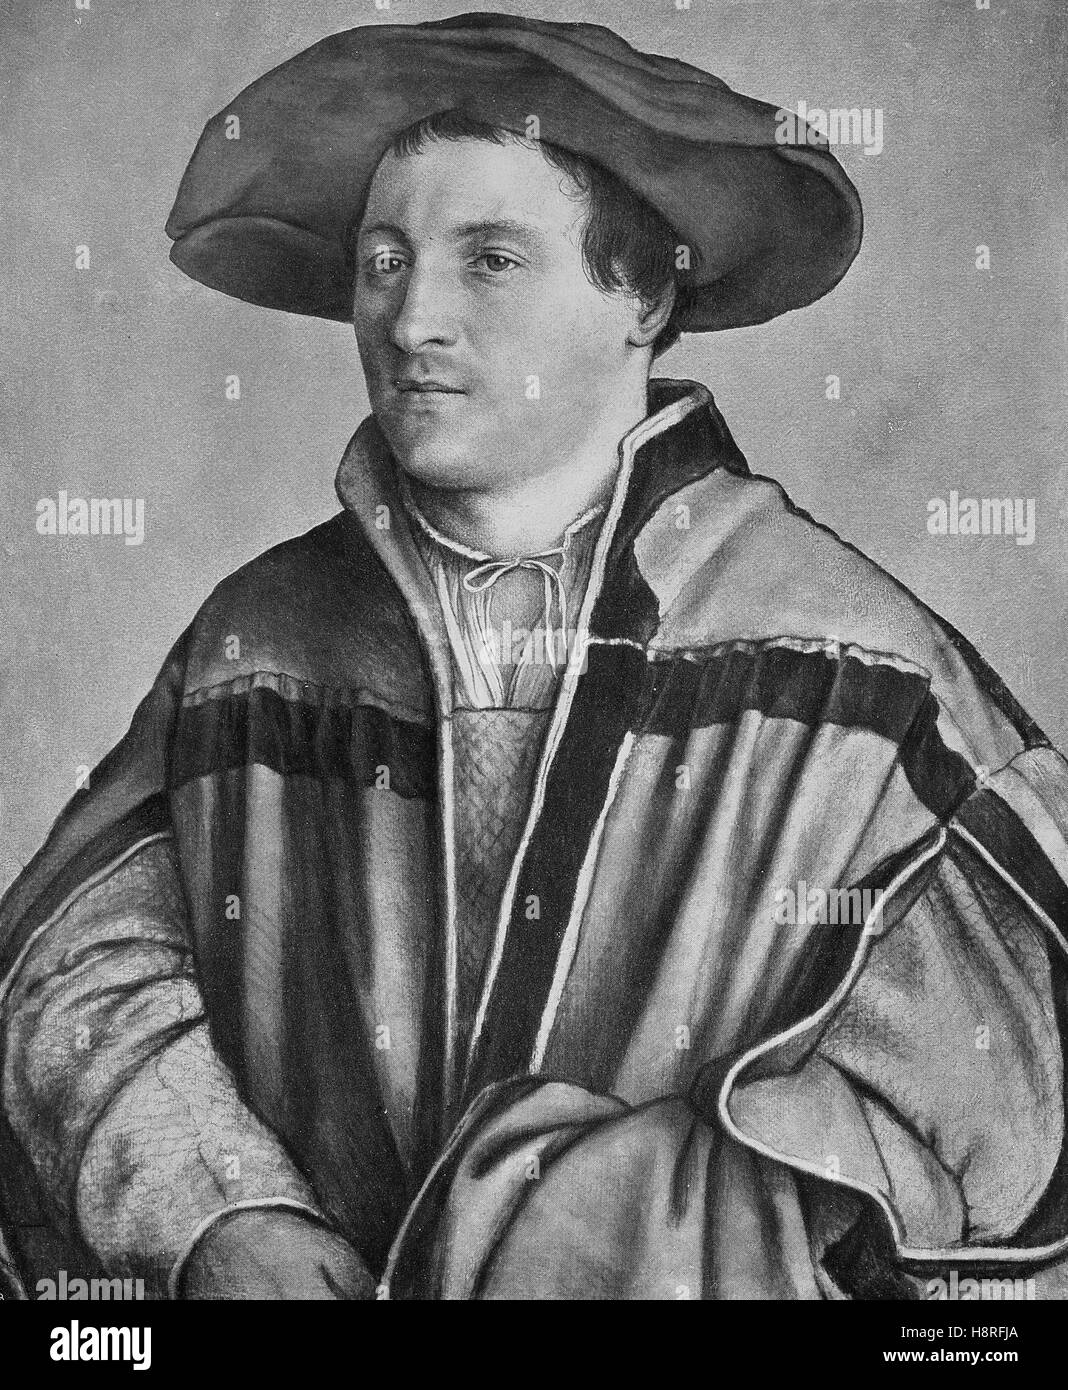 Hans Holbein the Younger was a German and Swiss artist and printmaker who worked in a Northern Renaissance style - Stock Image